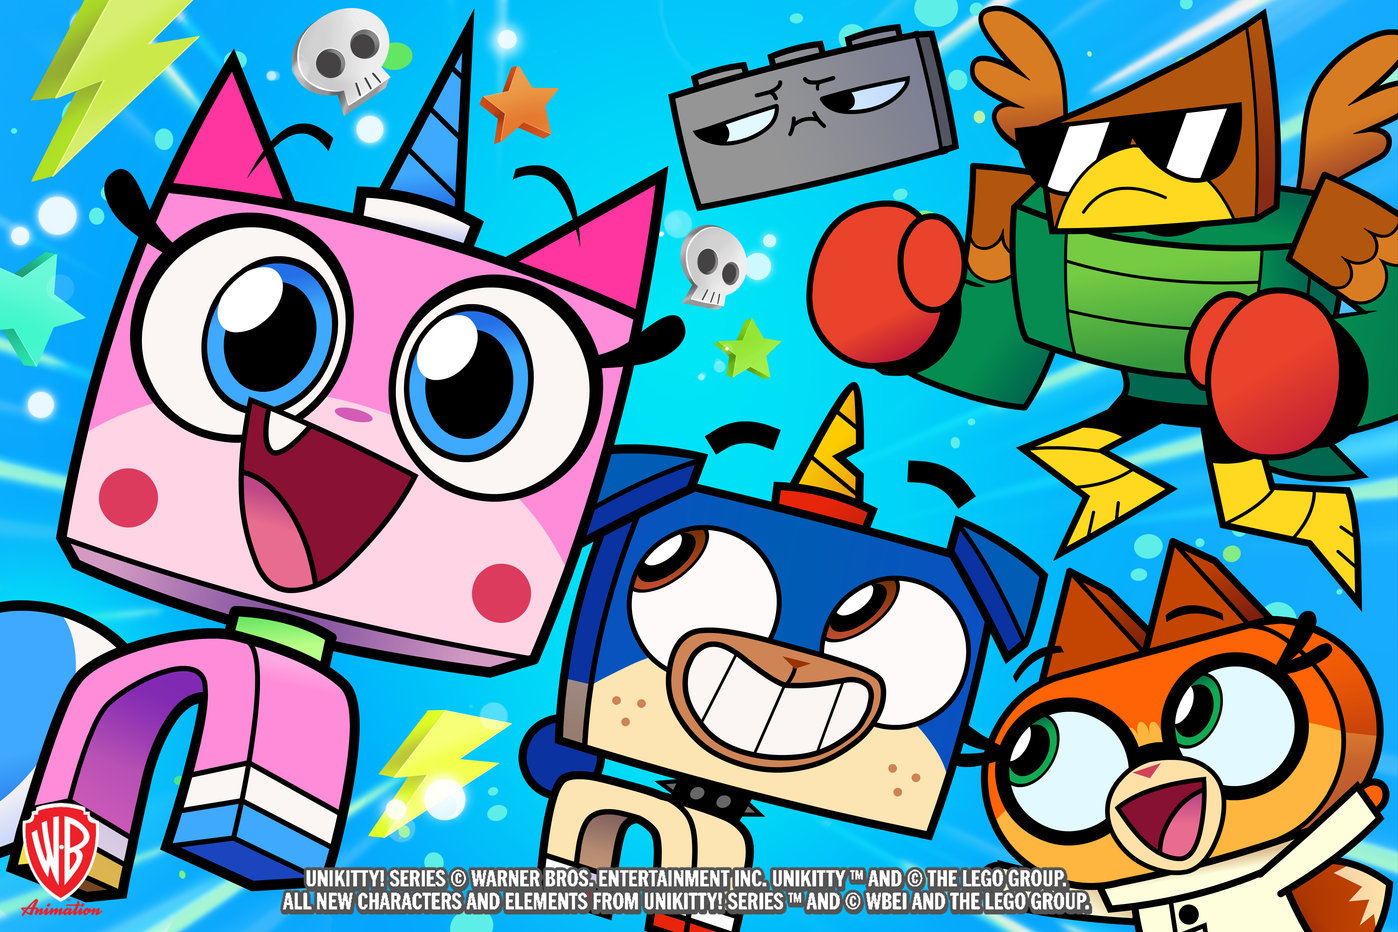 Lego Movie's Unikitty gets her own series from the Cartoon Network